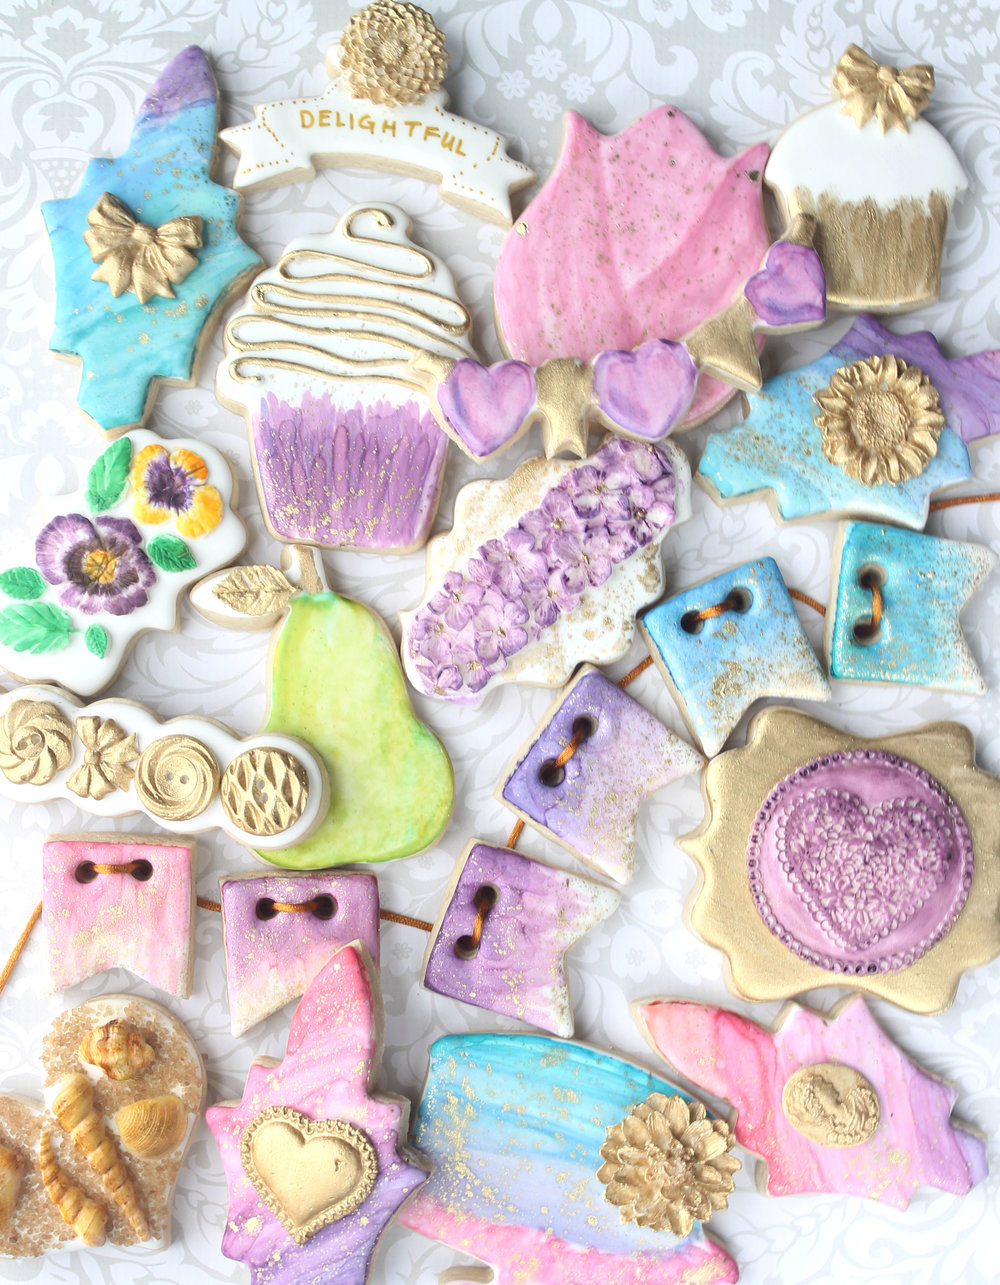 Watercolors + Edible Clay Decorated Cookie Collection